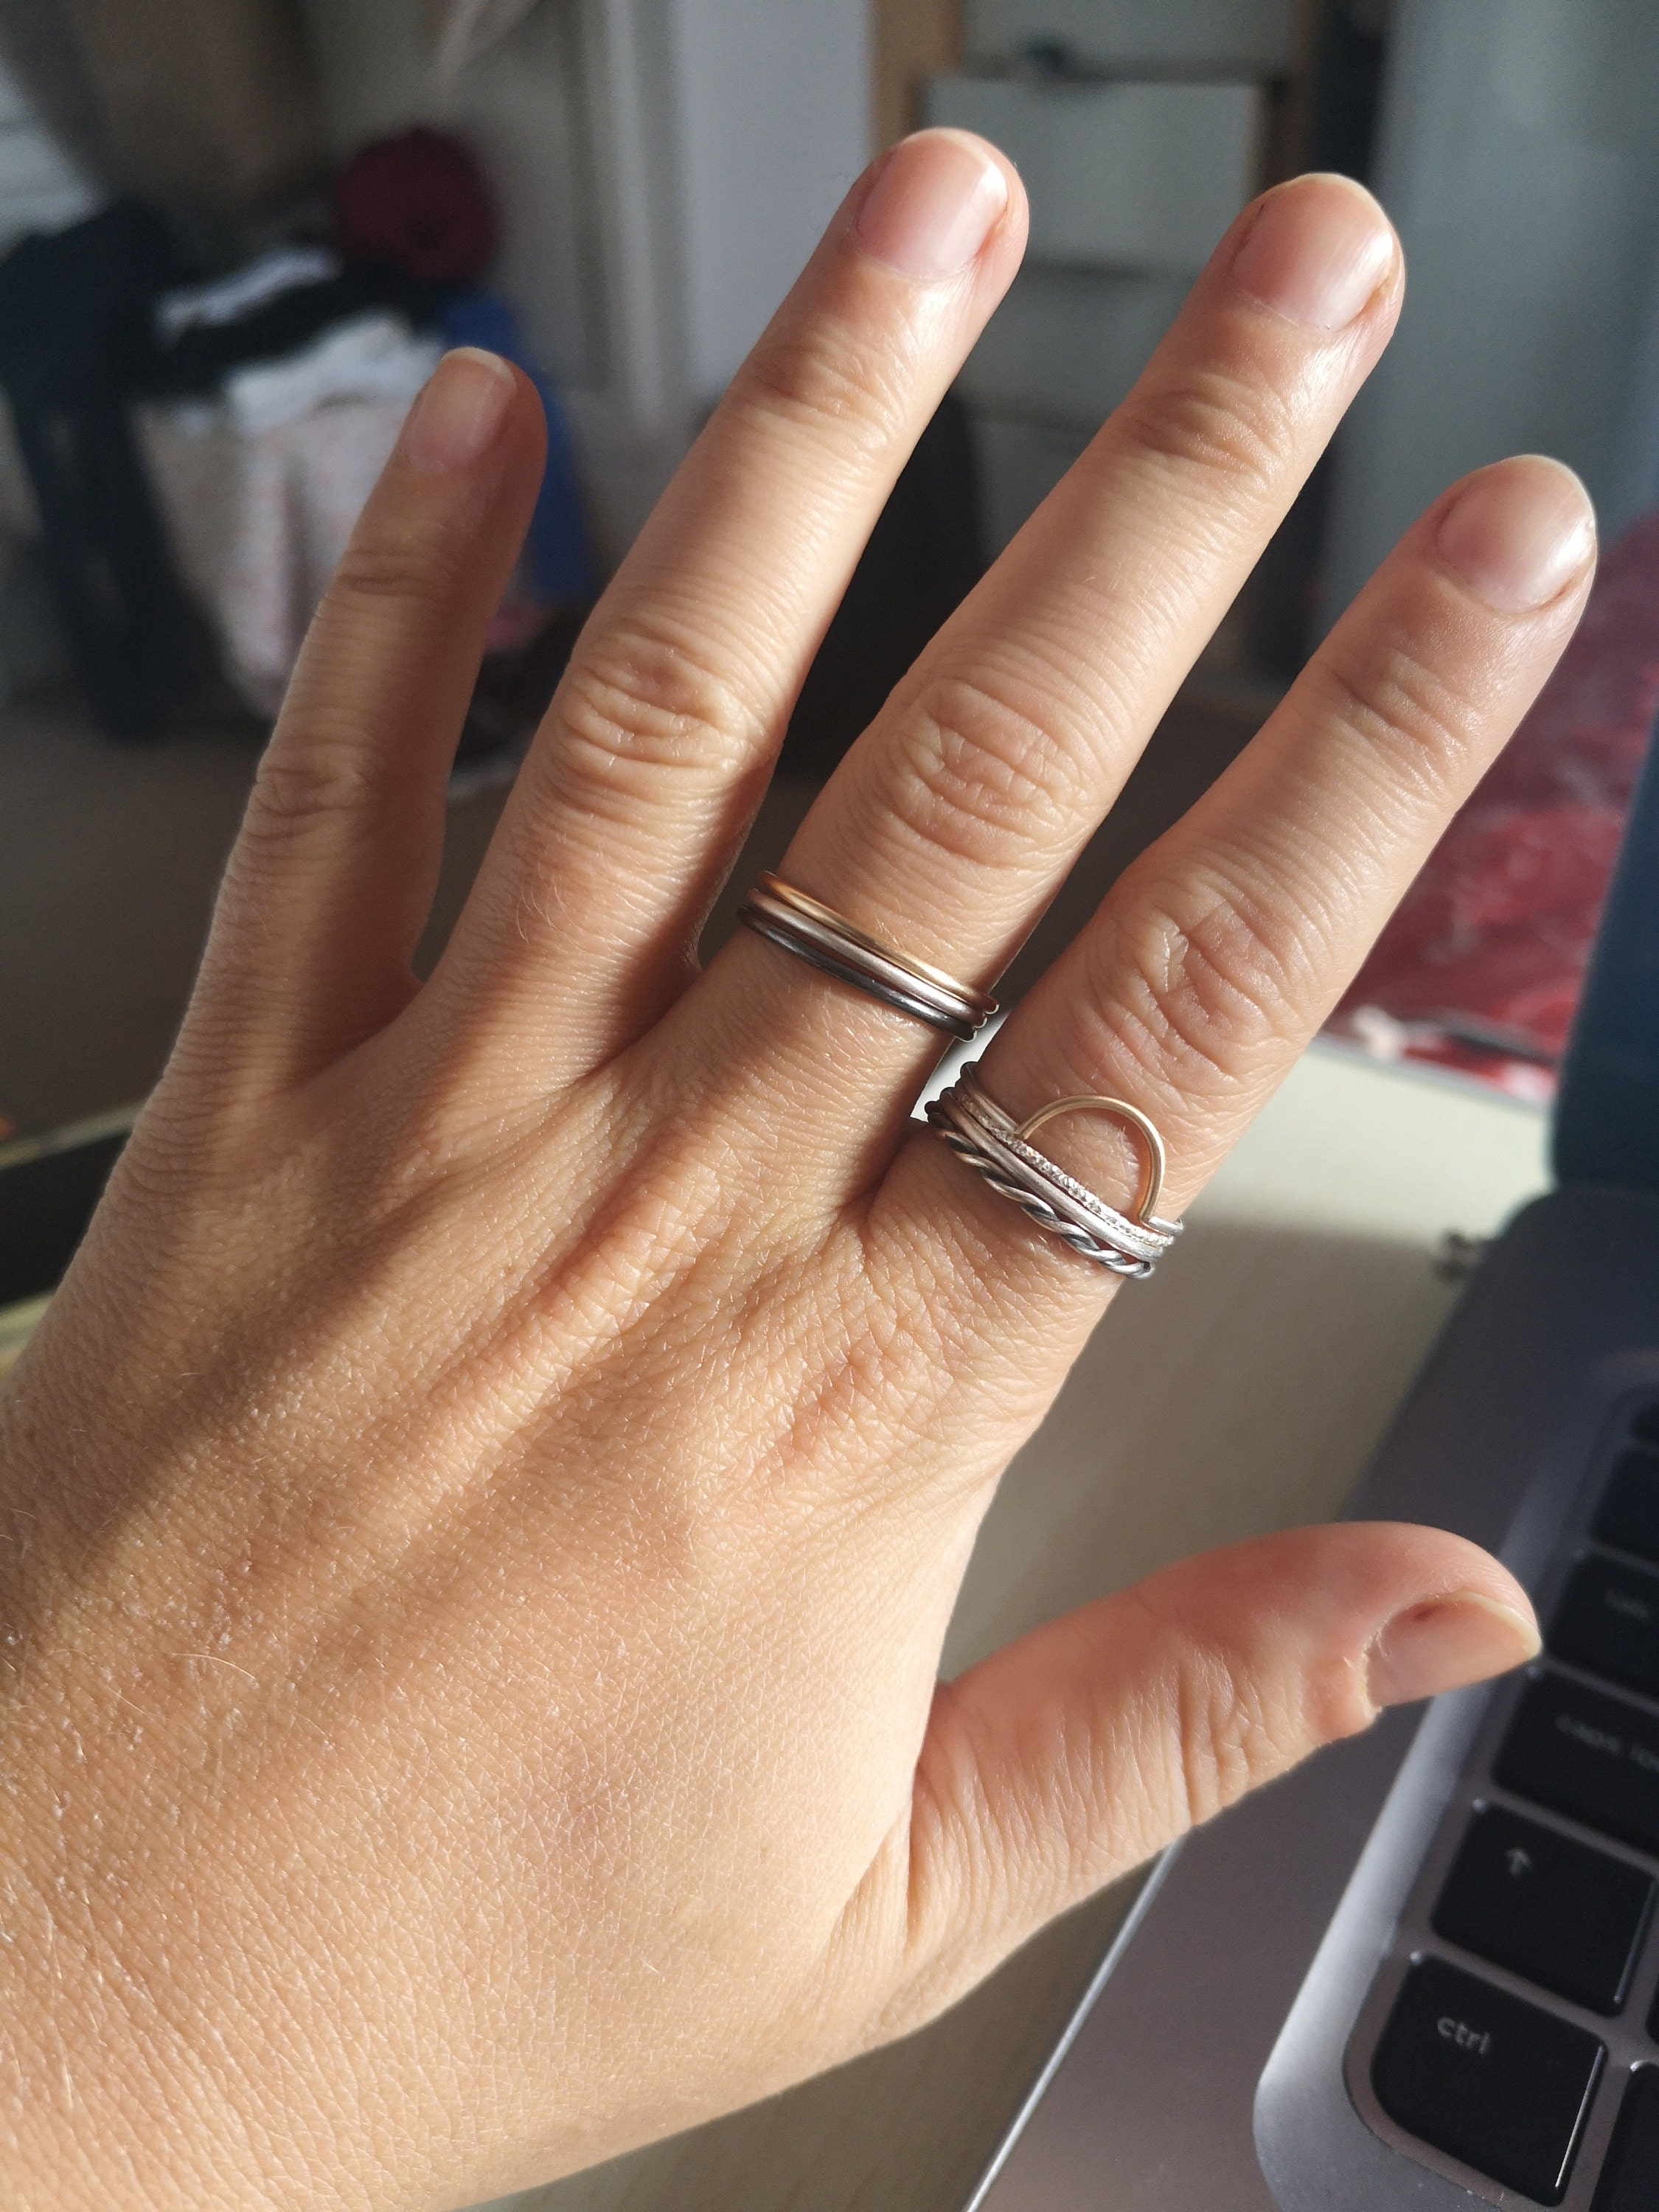 Aisling Avitabile added a photo of their purchase